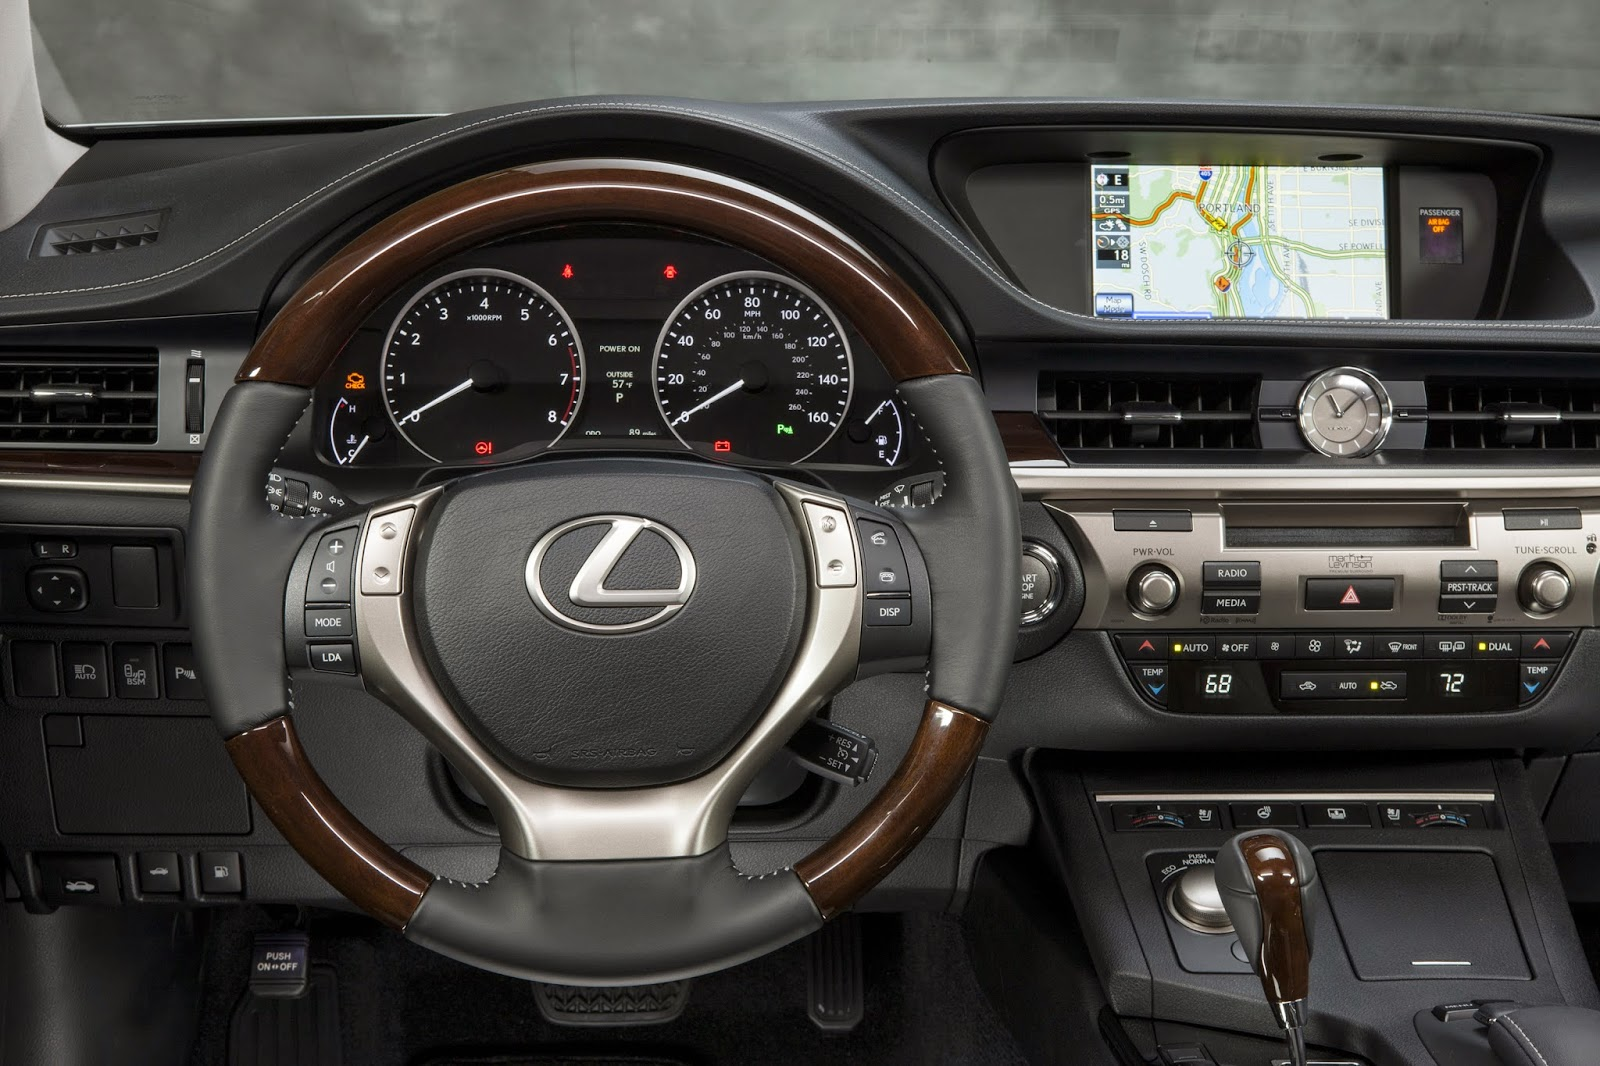 2015 Lexus ES350 interior view